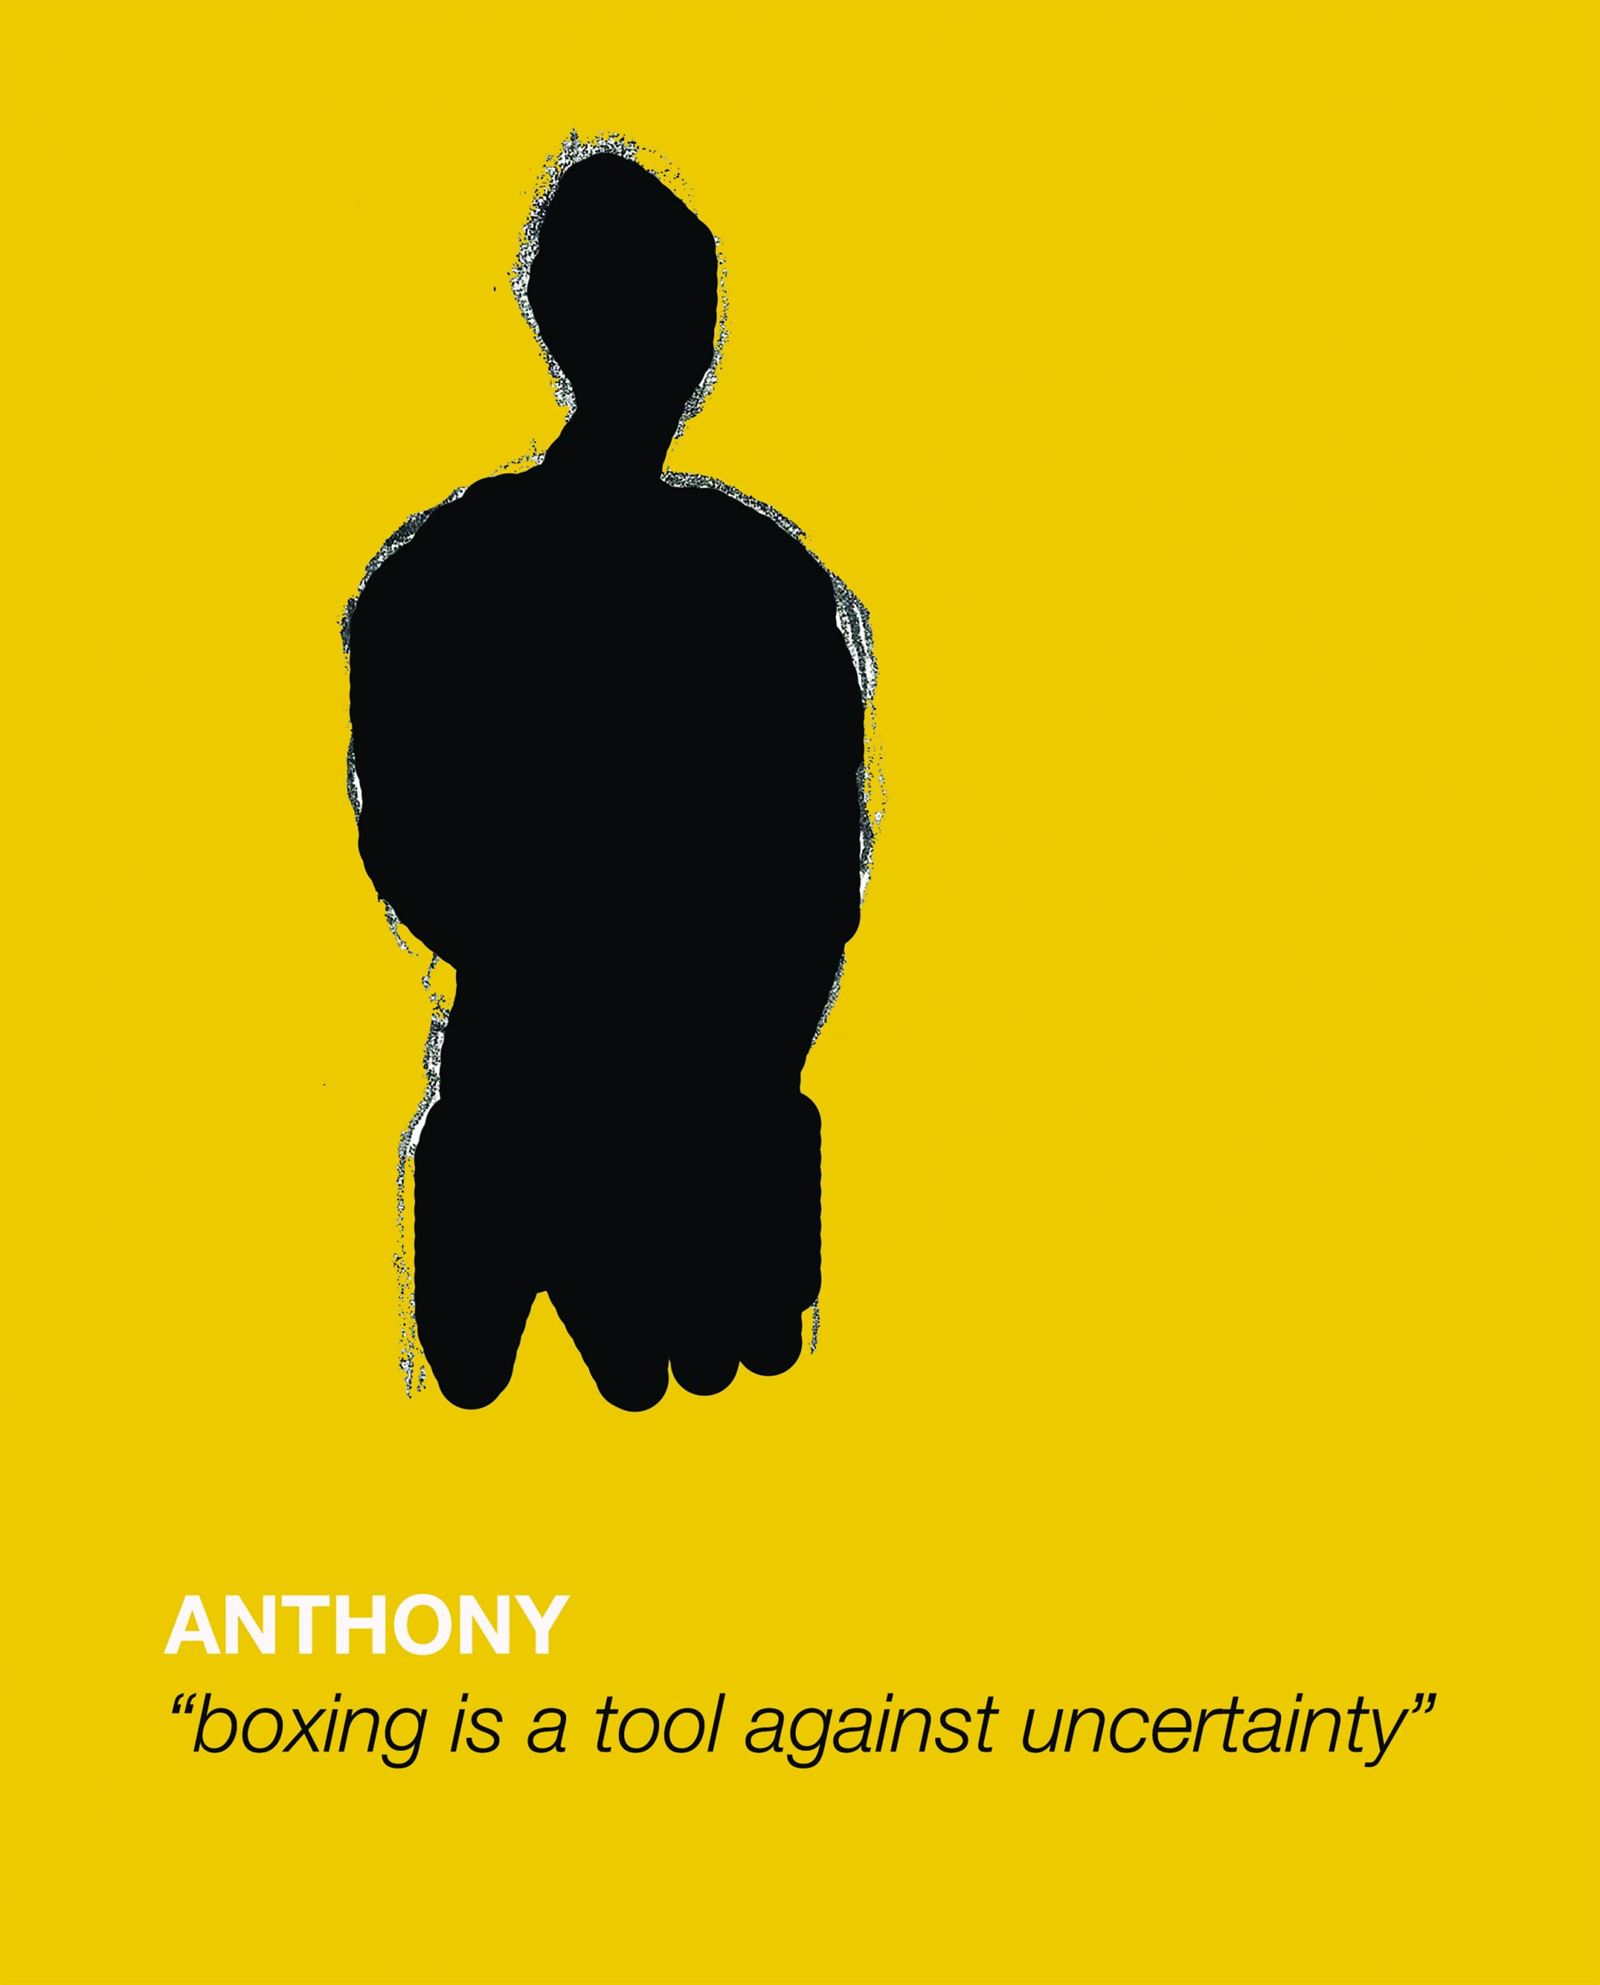 07 Anthony silhoutte